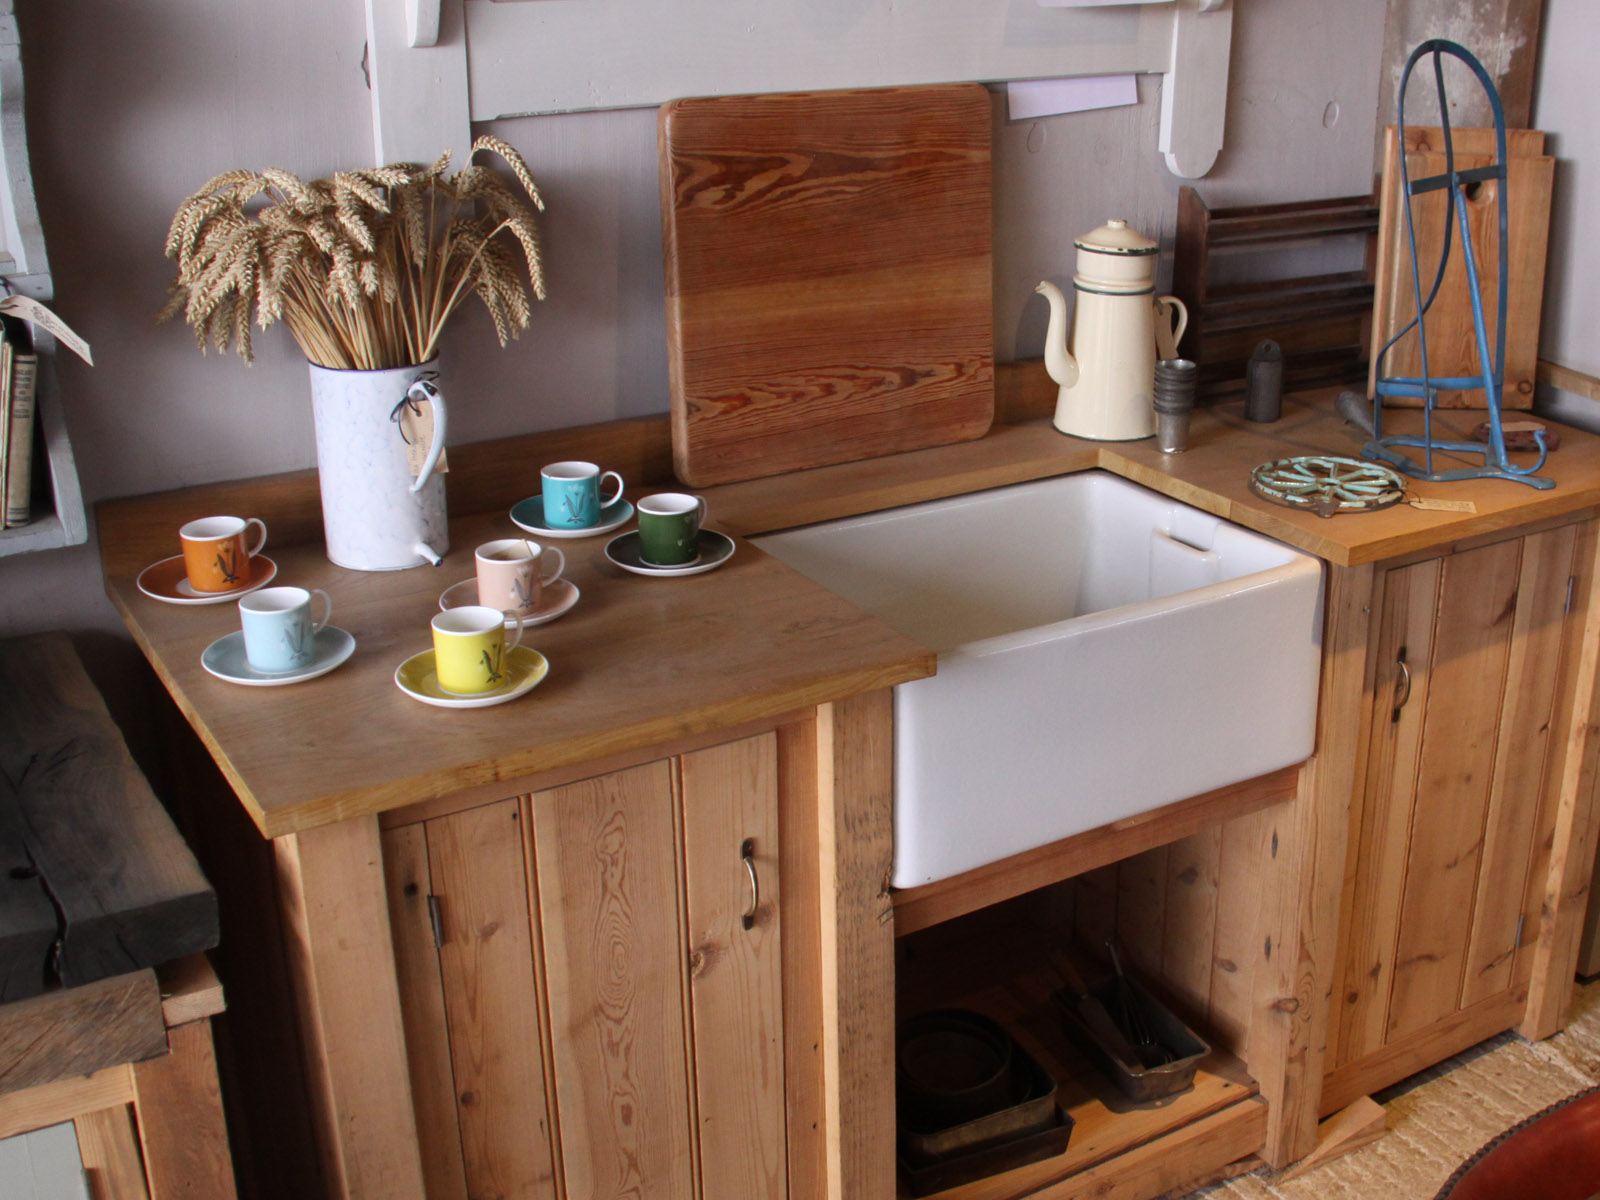 Kitchen Sink Furniture : ... these units can be made to any size to suit your sink and kitchen